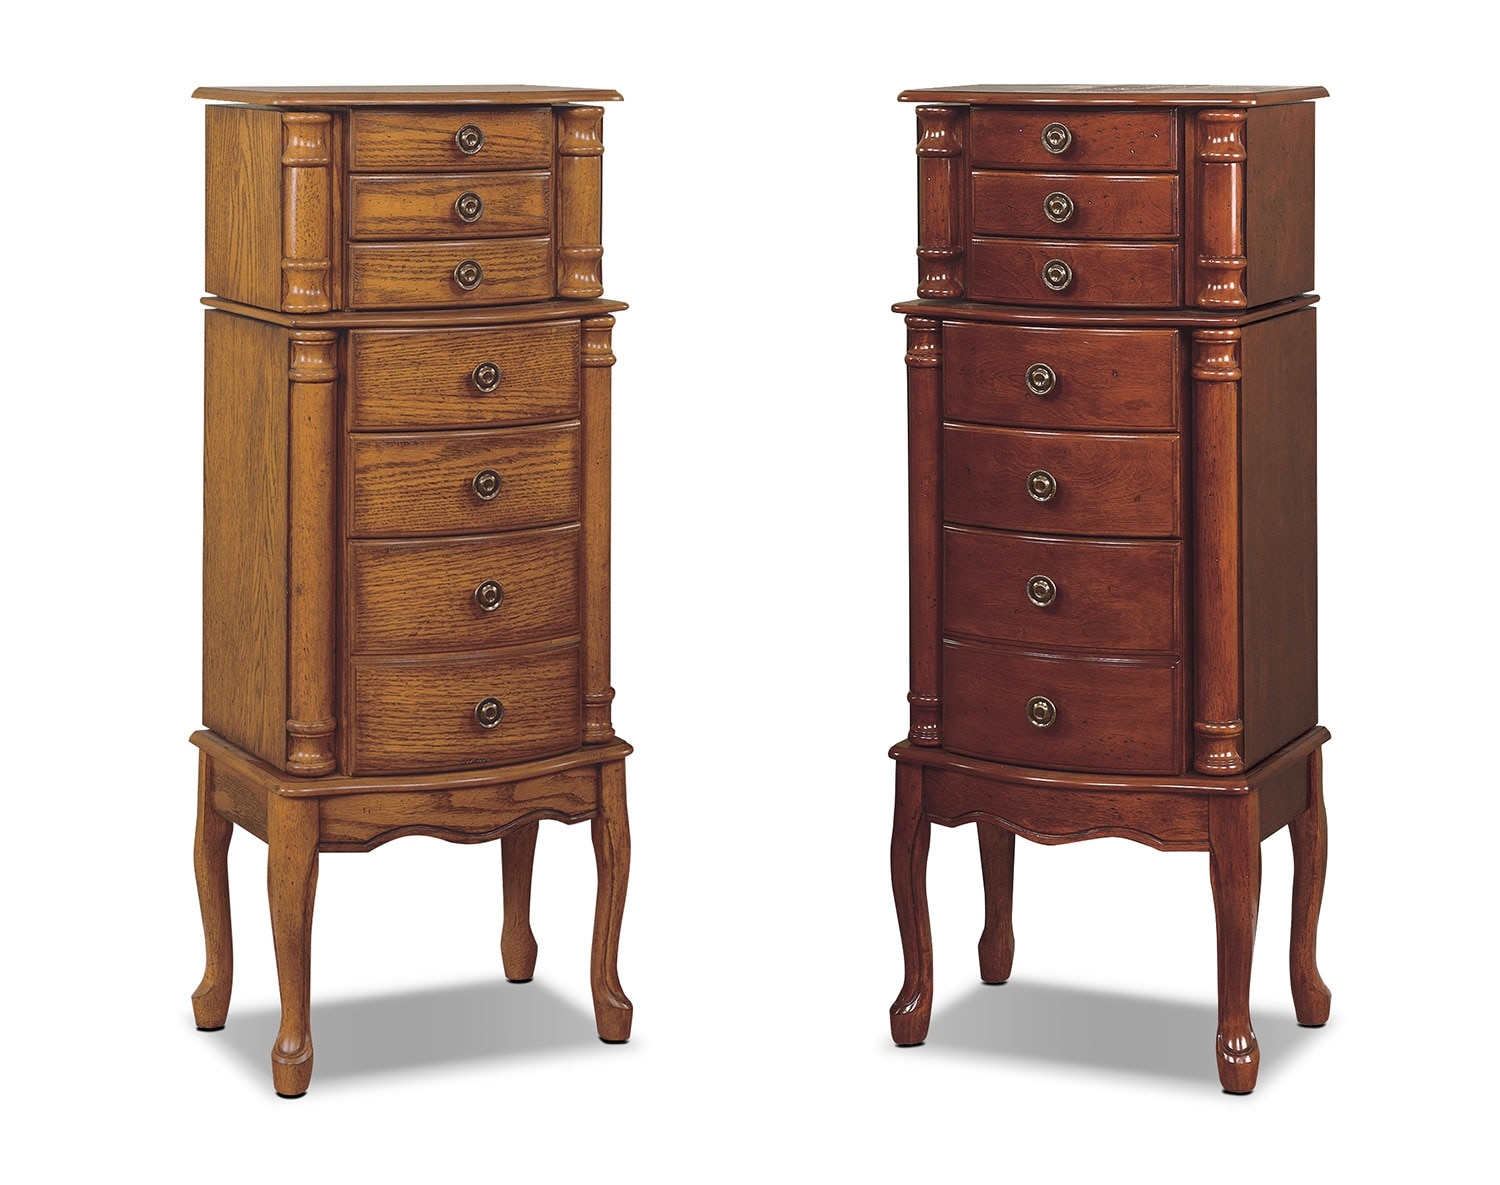 The Ivy Jewelry Armoire Collection